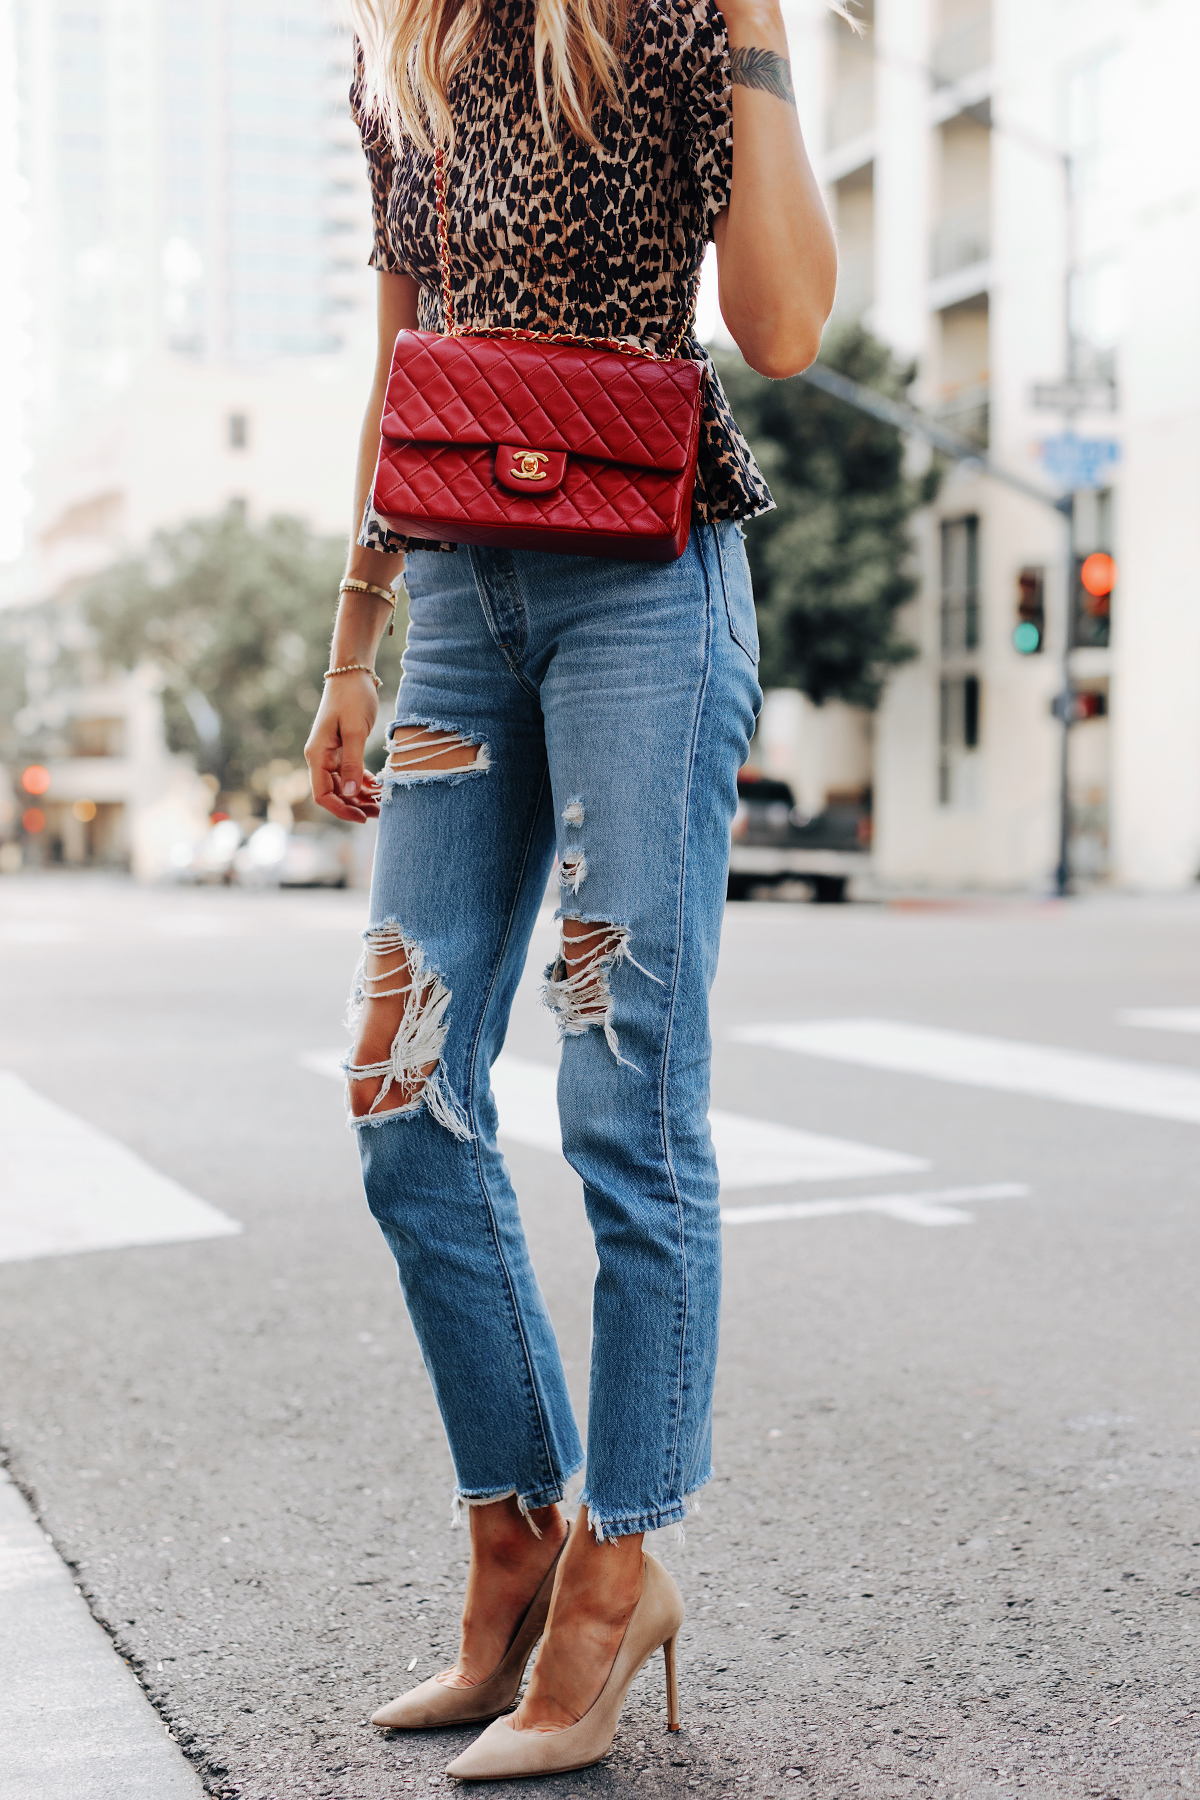 Fashion Jackson Wearing Ganni Leopard Peplum Top Levis Ripped Jeans Jimmy Choo BB Nude Pumps Chanel Classic Flap Red Handbag